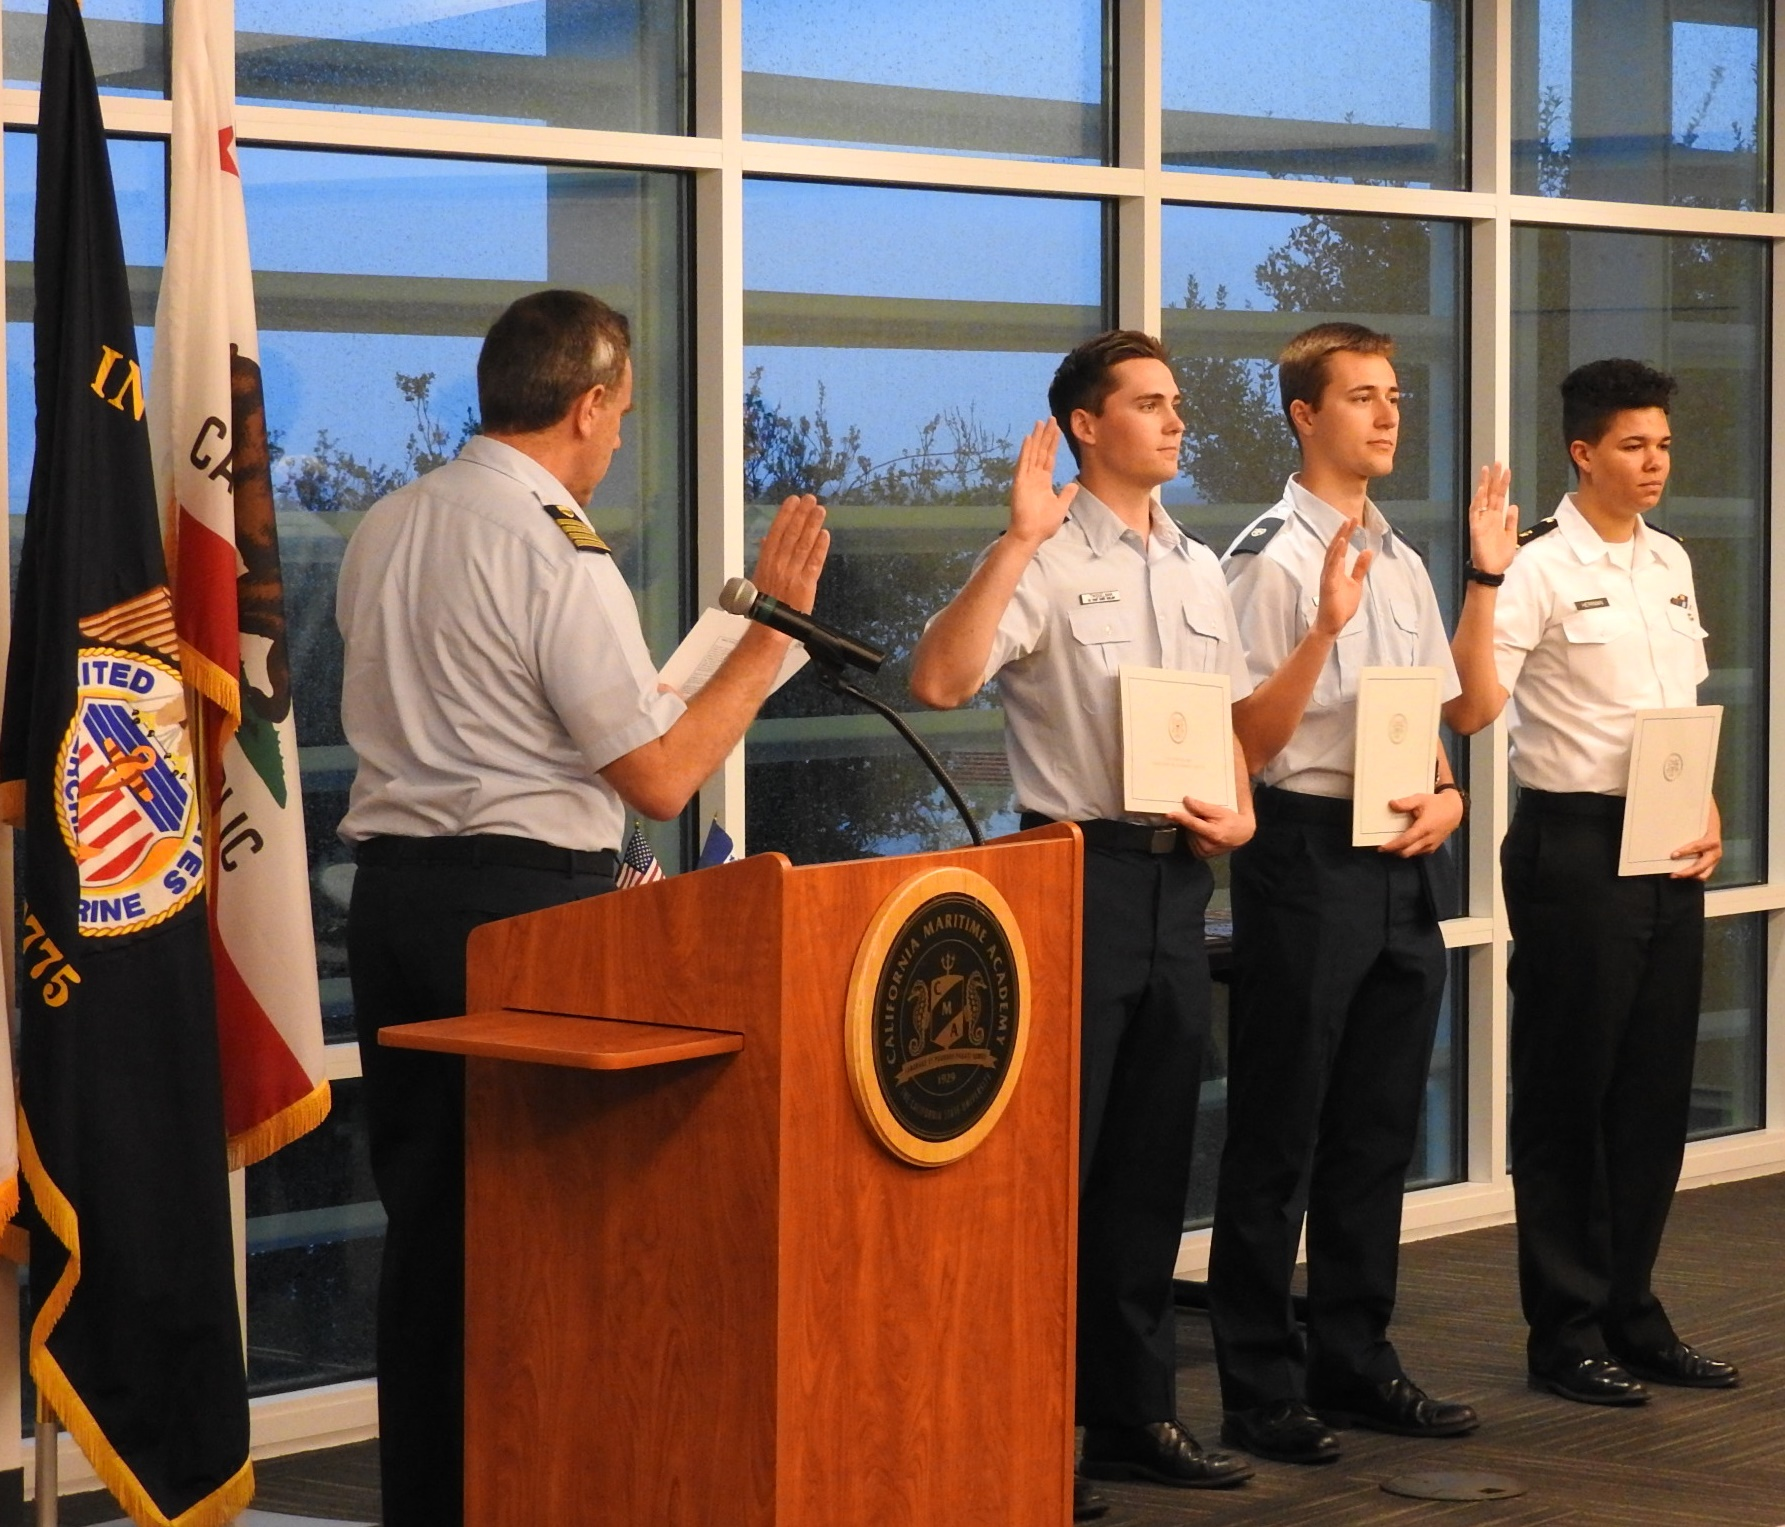 Captain William Drelling administering the Appointed Leaders Pledge for the new unit leadership (From left to right: Tyan Twisselman [Unit Leader], Austin Wittmann [Deputy Unit Leader], and Amelia Herrman [Operations Unit Leader])